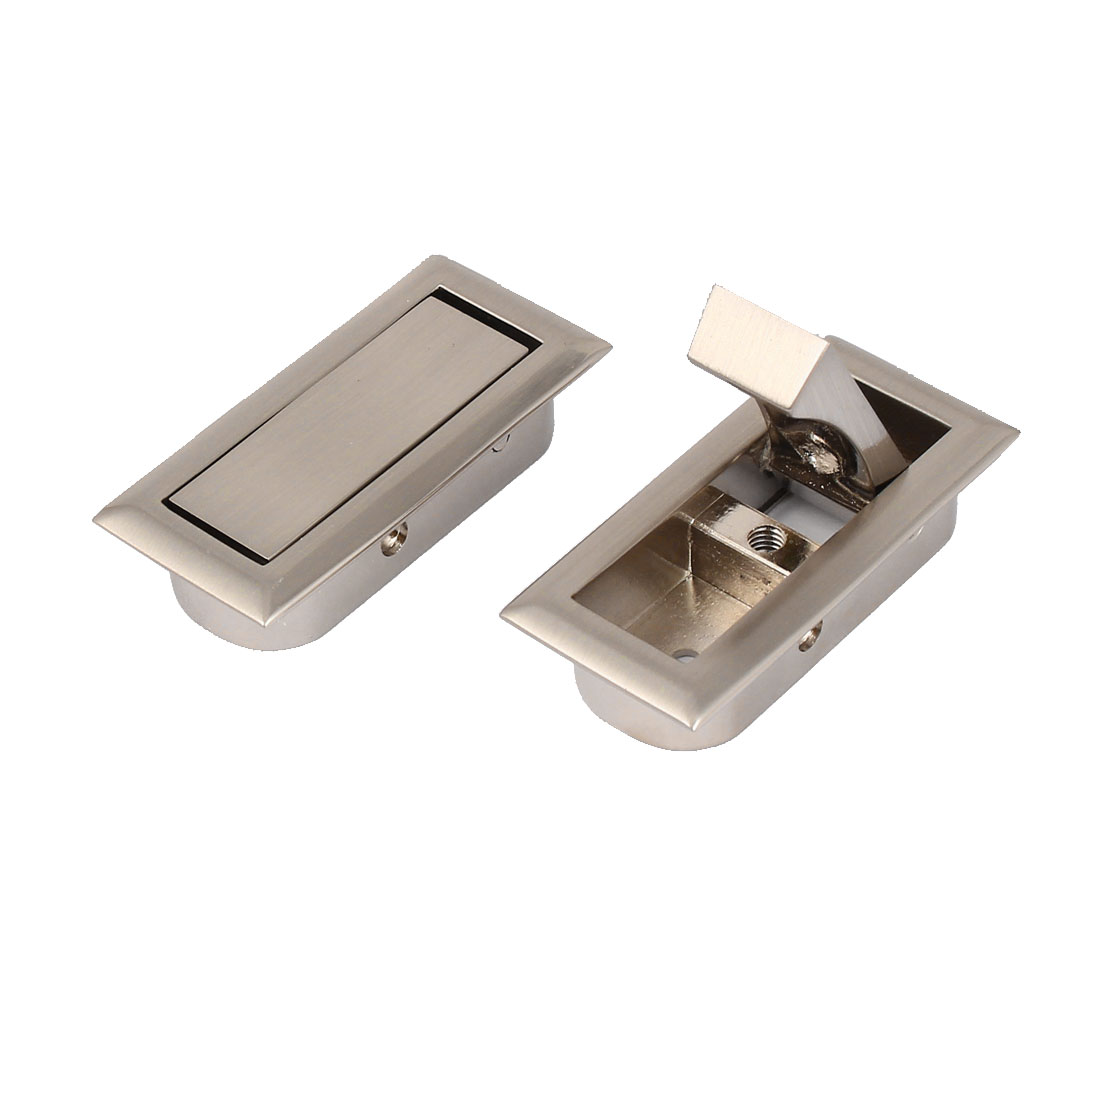 Cabinet Drawer Matte Finish Recessed Zinc Alloy Pull Handle Silver Gray 2pcs